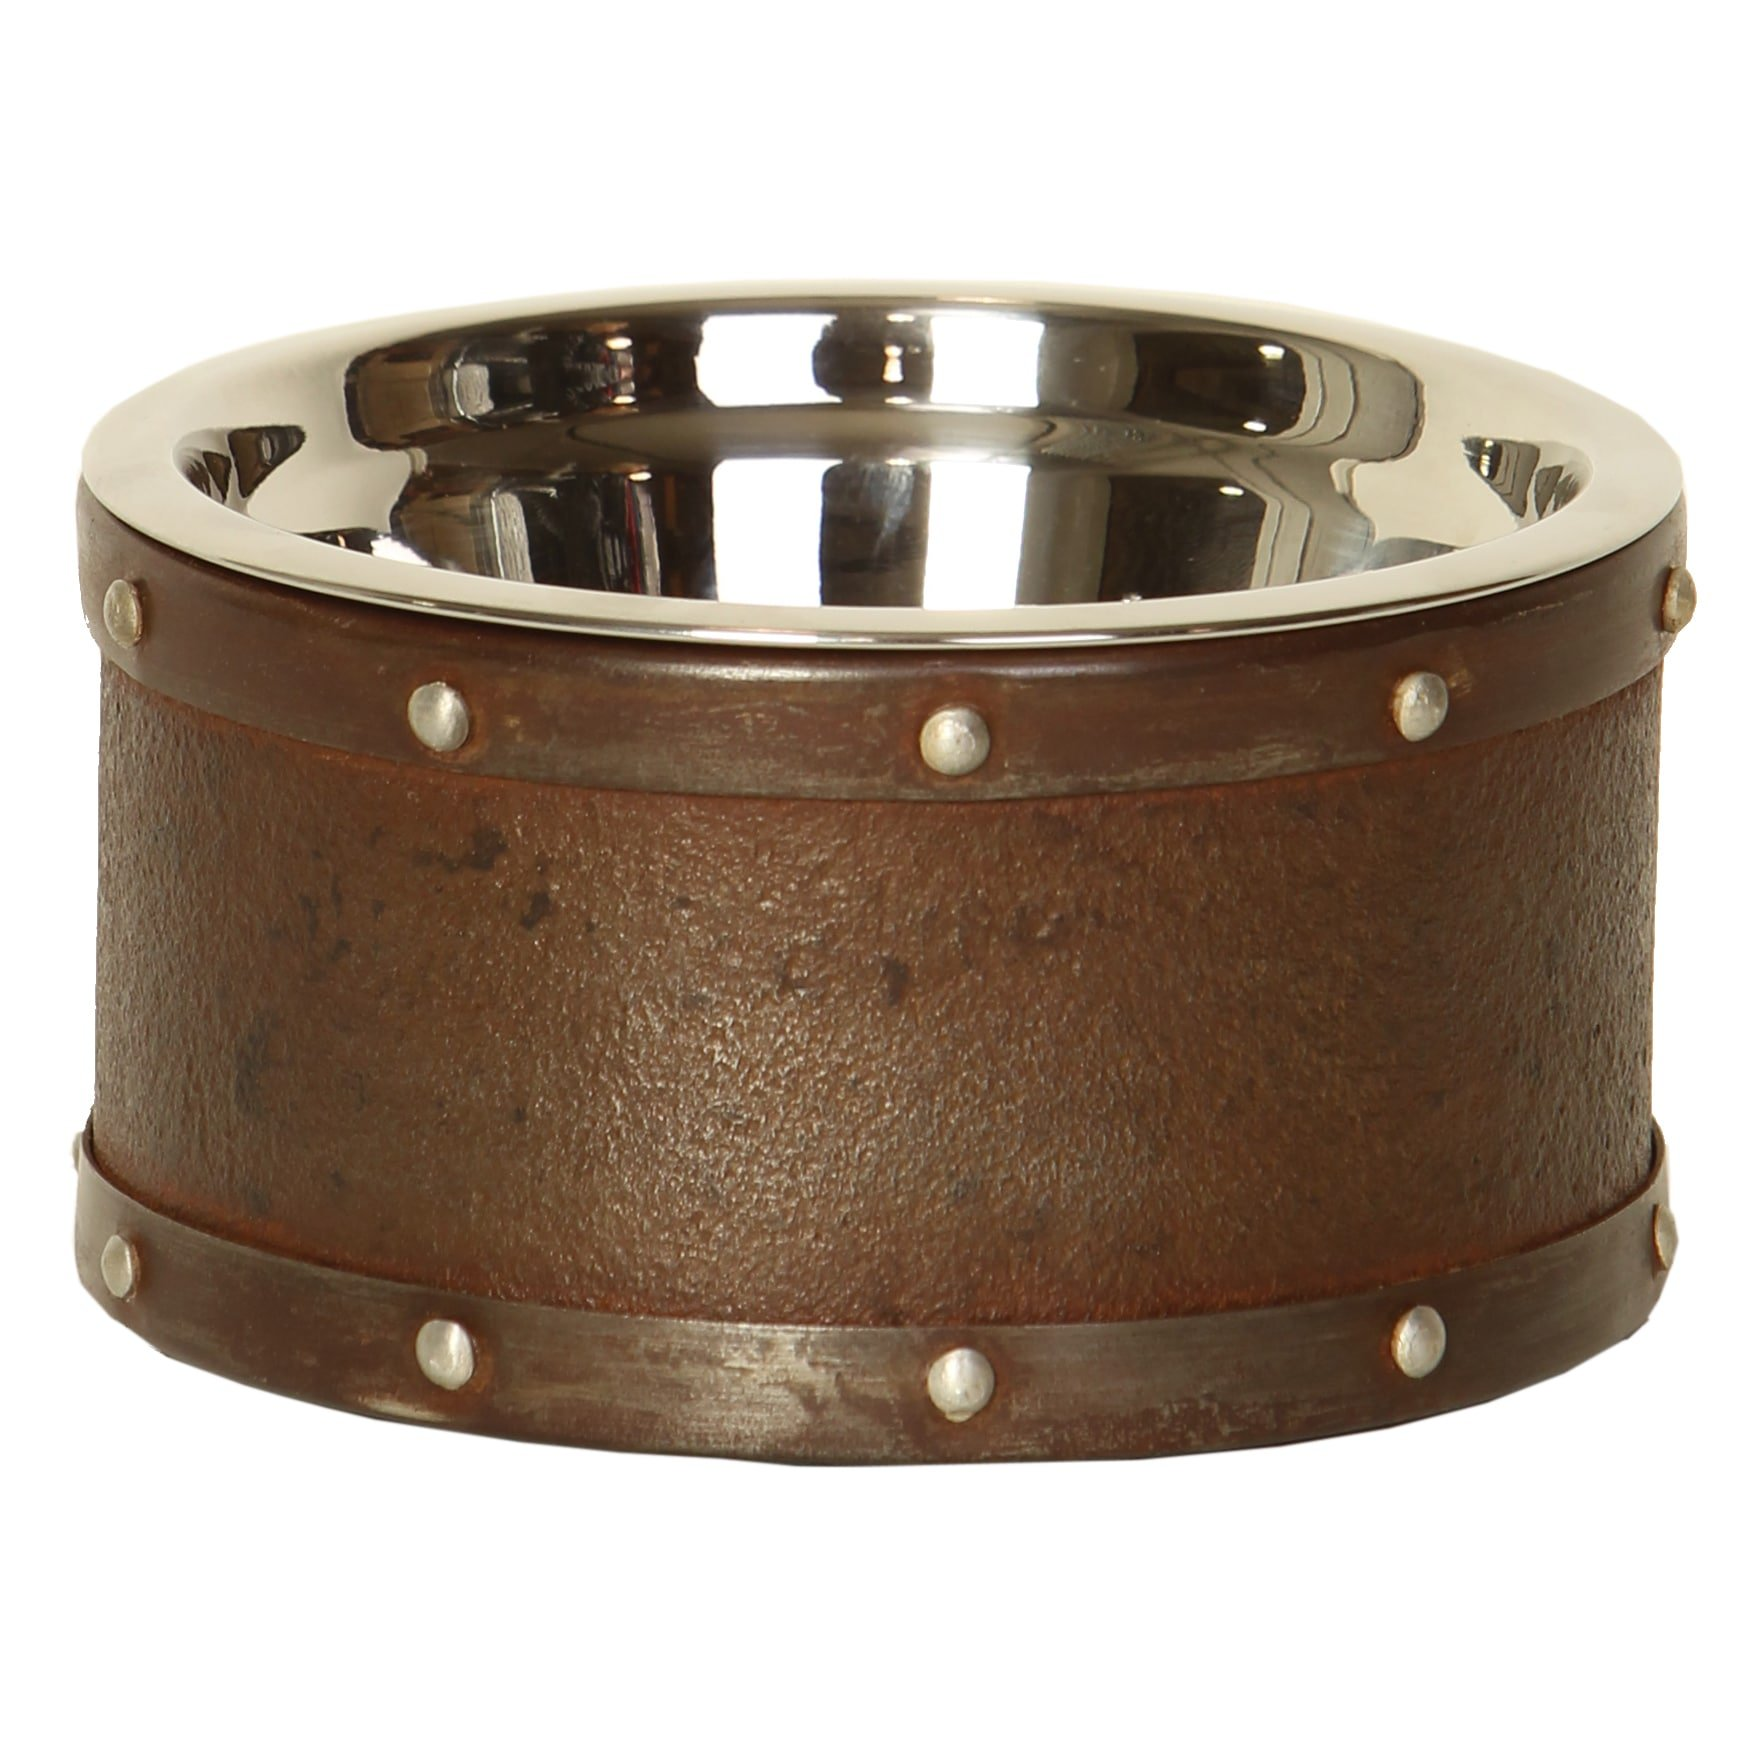 Unleashed Life Briggs Reclaimed Steel Drum Dish, Small by Unleashed Life (Image #5)